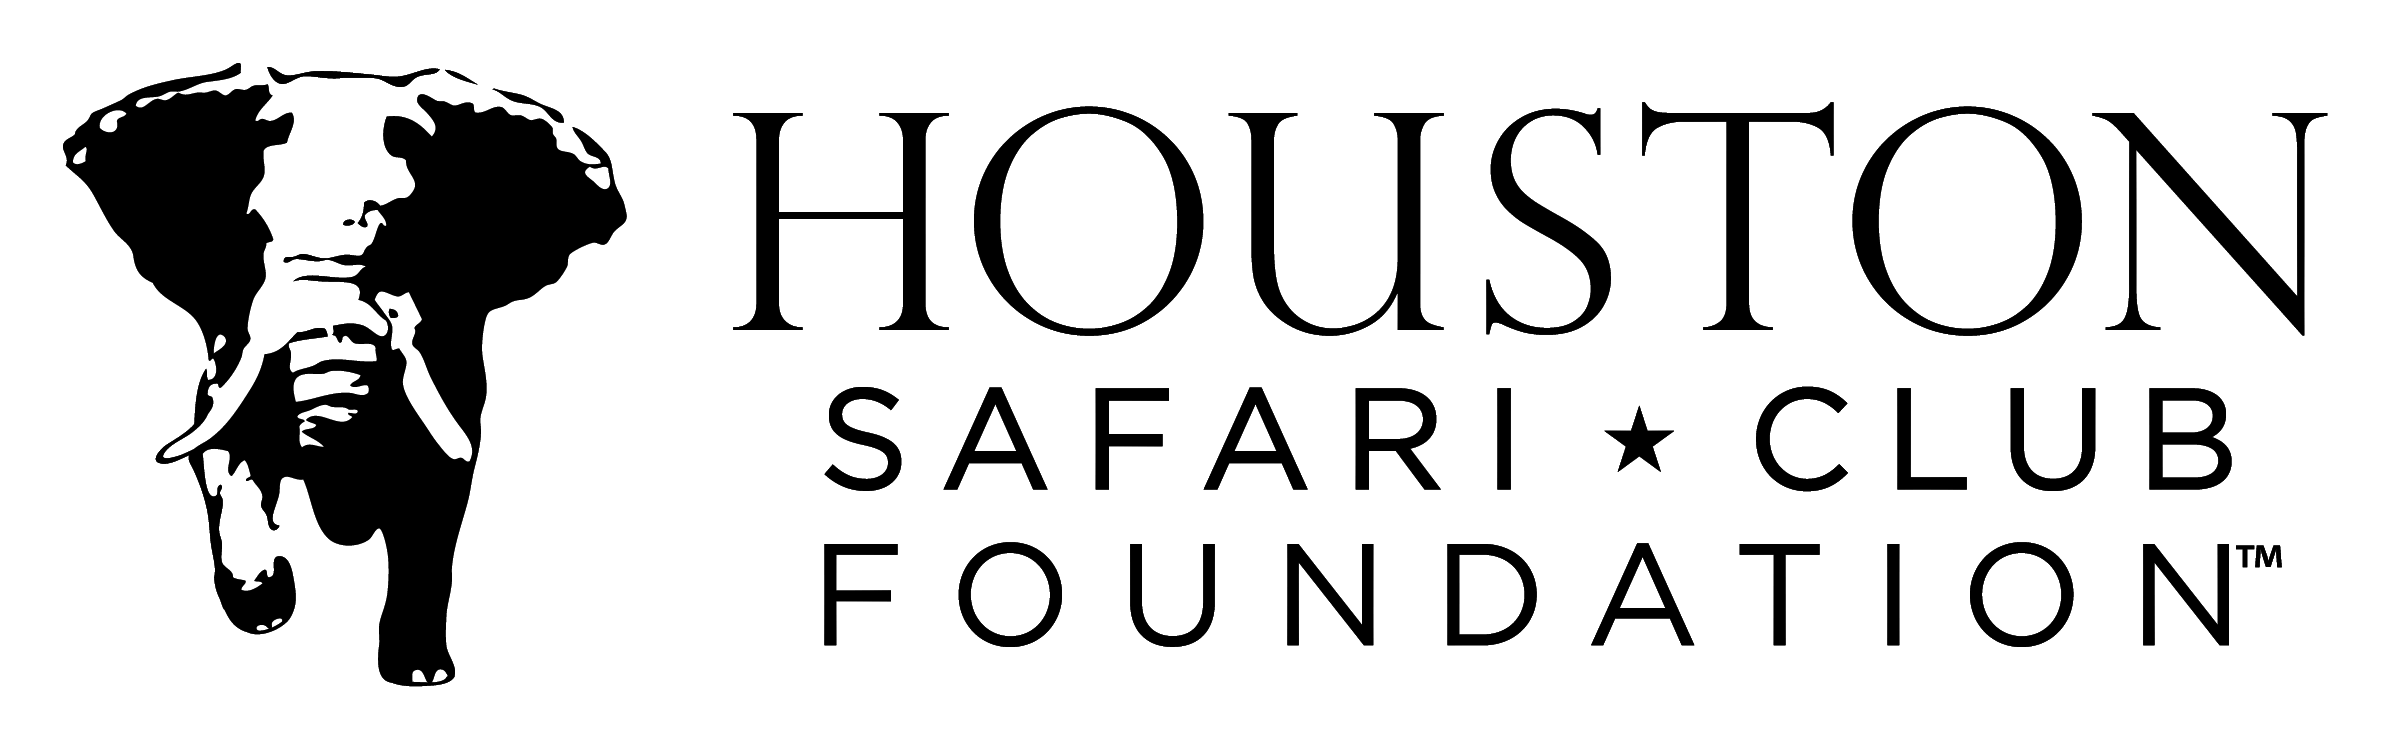 EXCLUSIVE OFFER FOR HOUSTON SAFARI CLUB FOUNDATION MEMBERS